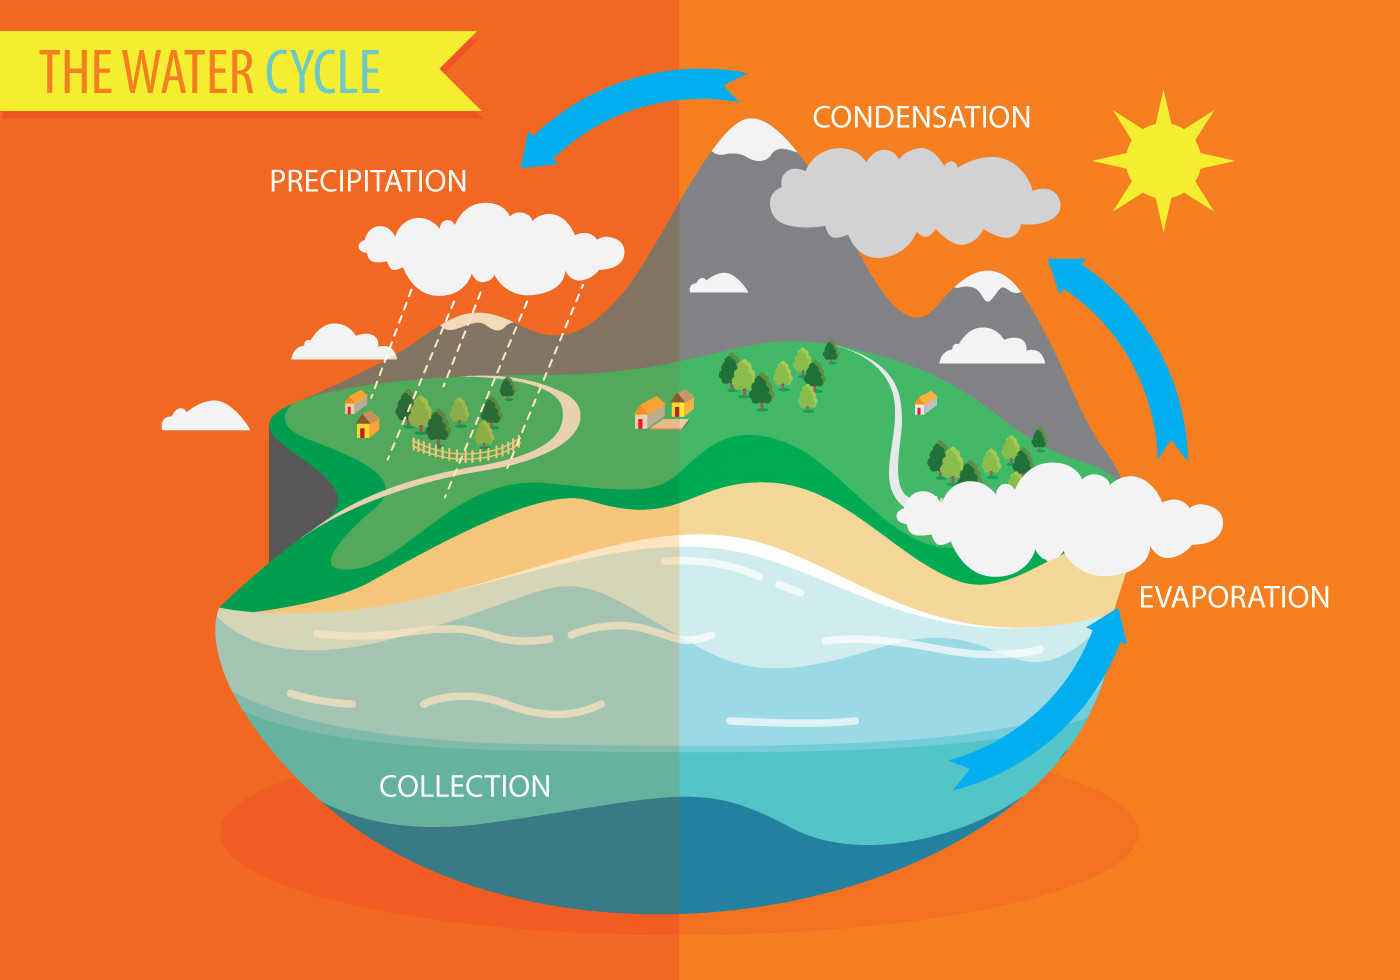 Water Cycle Diagram Vector - Download Free Vector Art ...